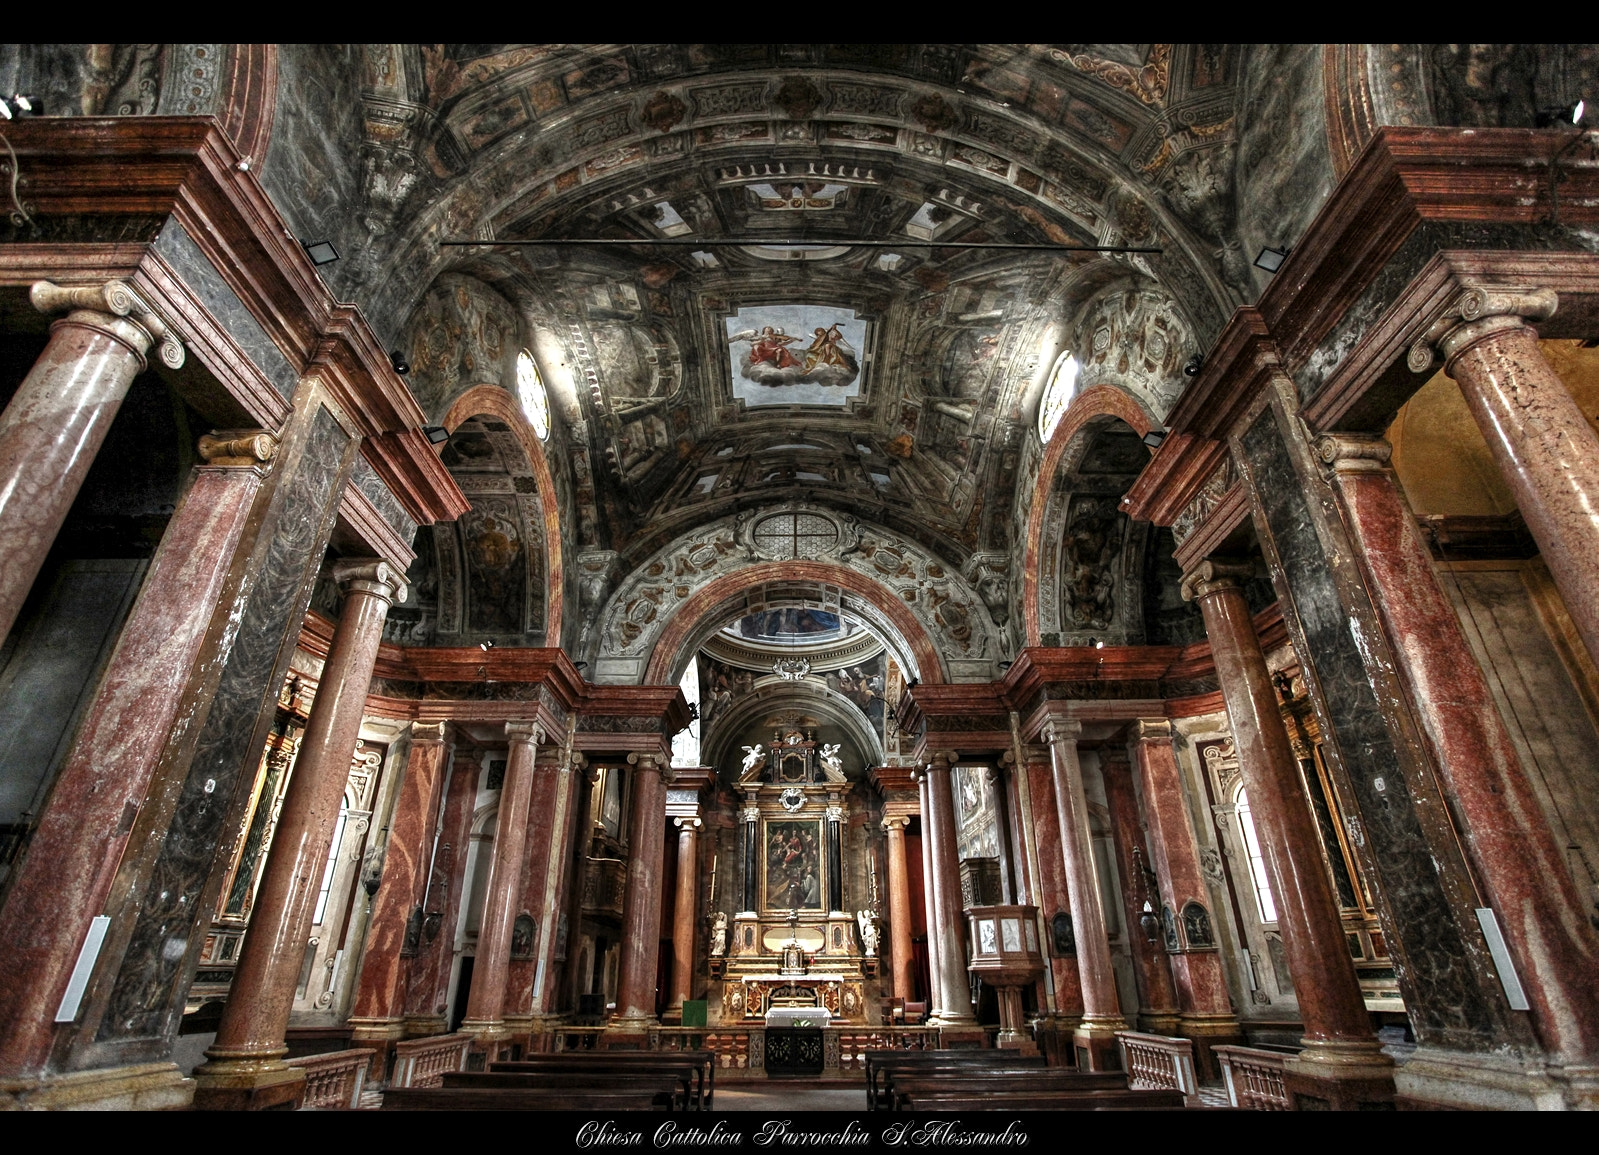 Photograph *Chiesa Cattolica Parrocchia S.Alessandro* by erhan sasmaz on 500px